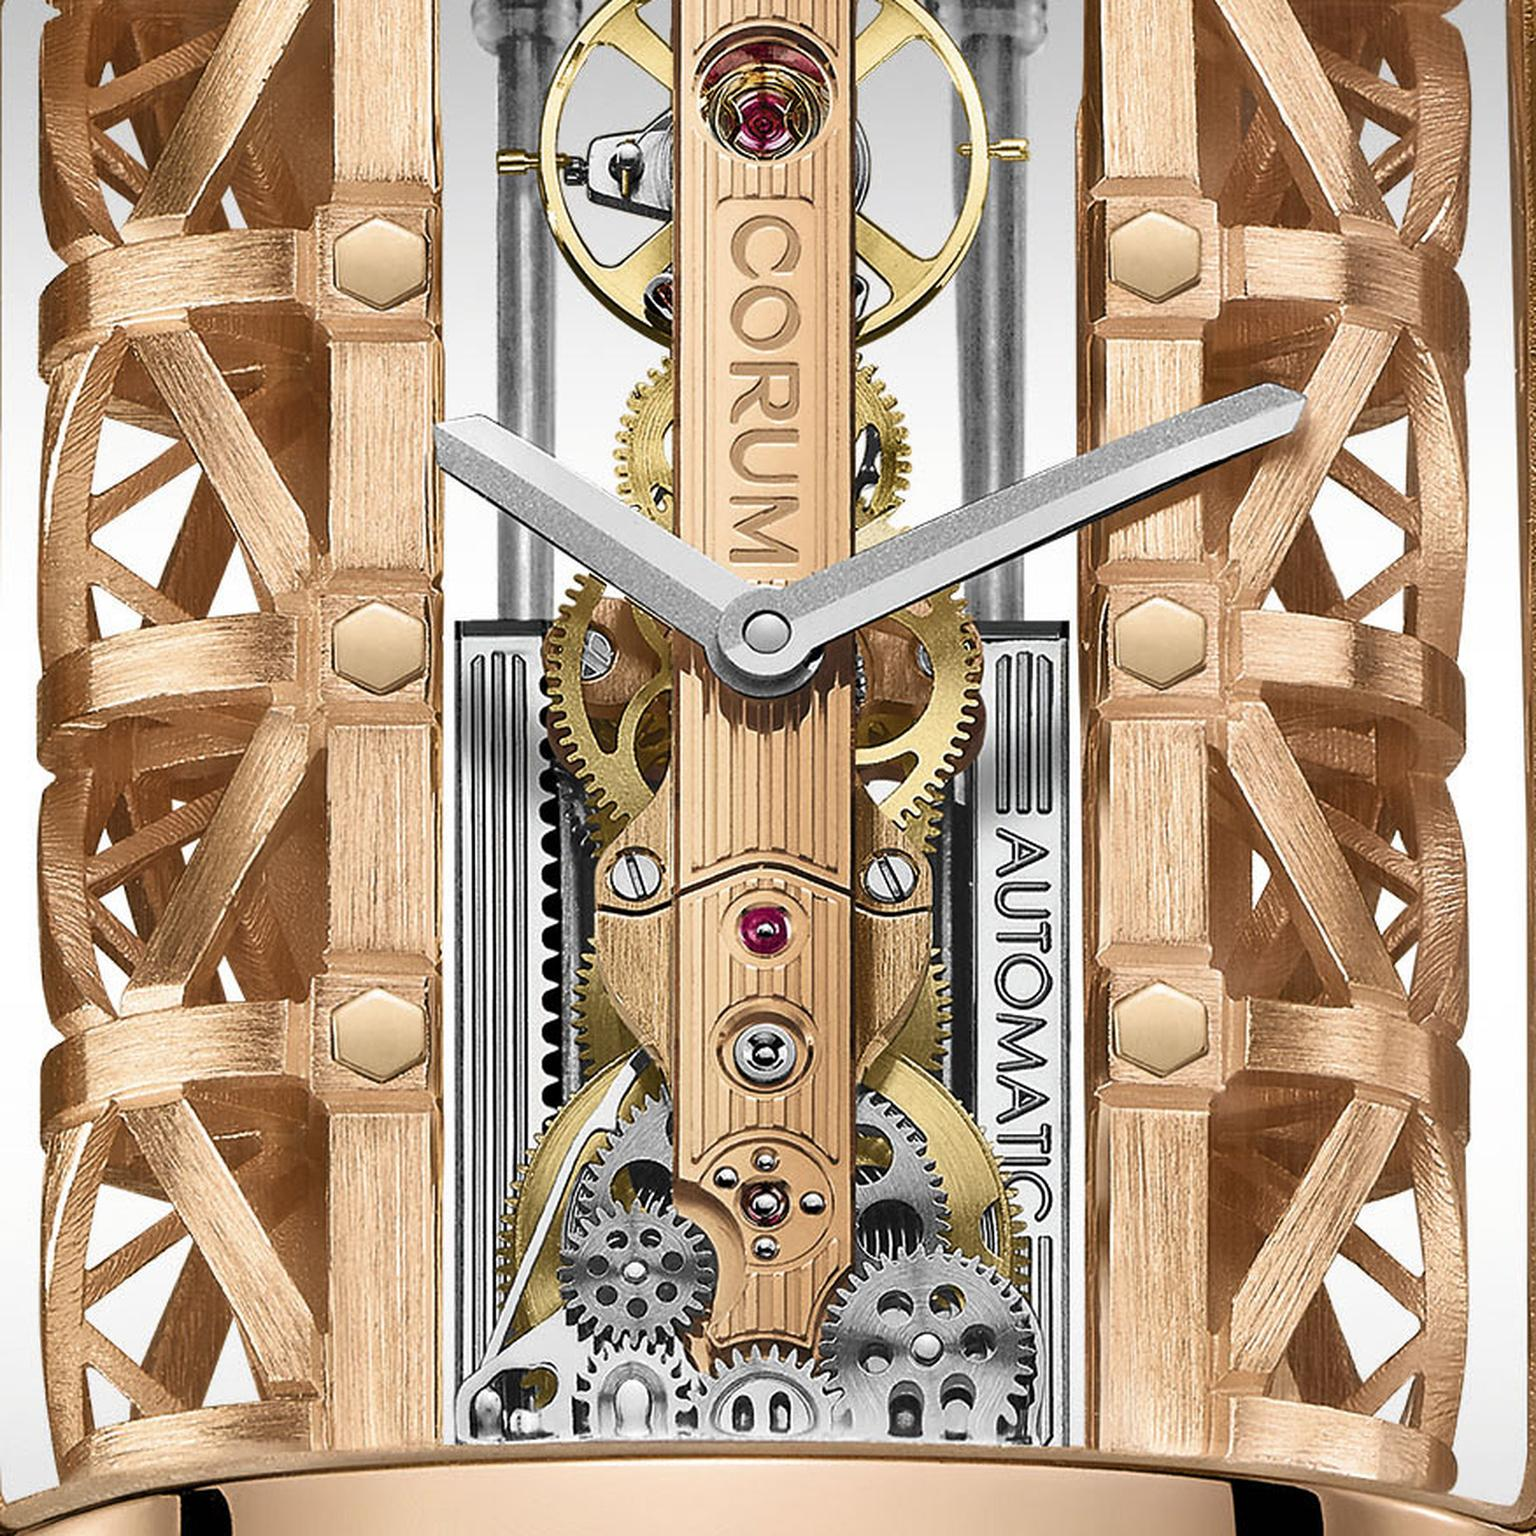 Corum Golden Bridge Stream close up of automatic movement